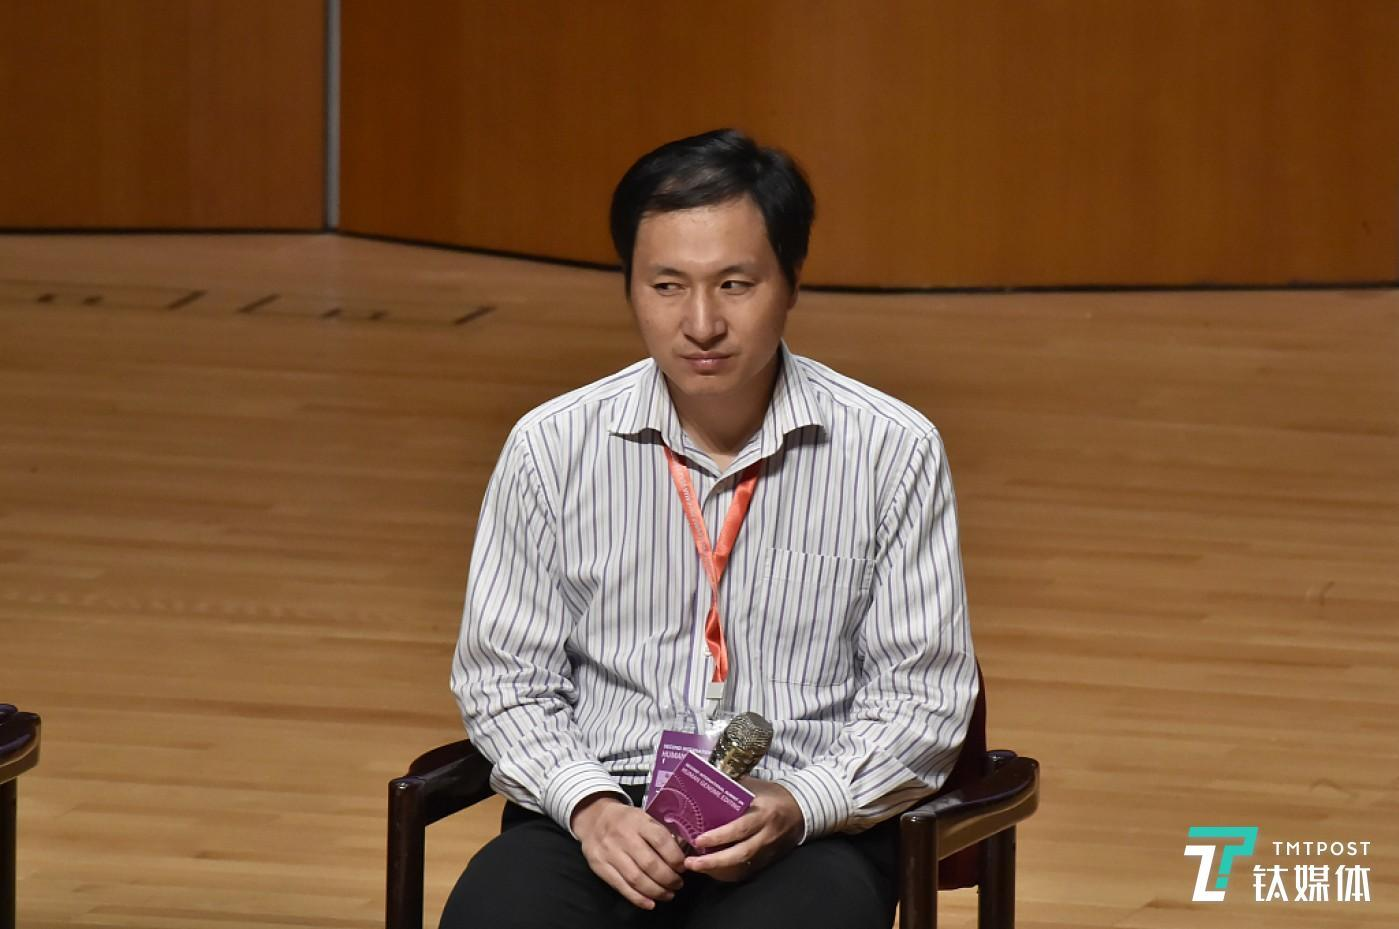 He Jiankui was asked 23 questions